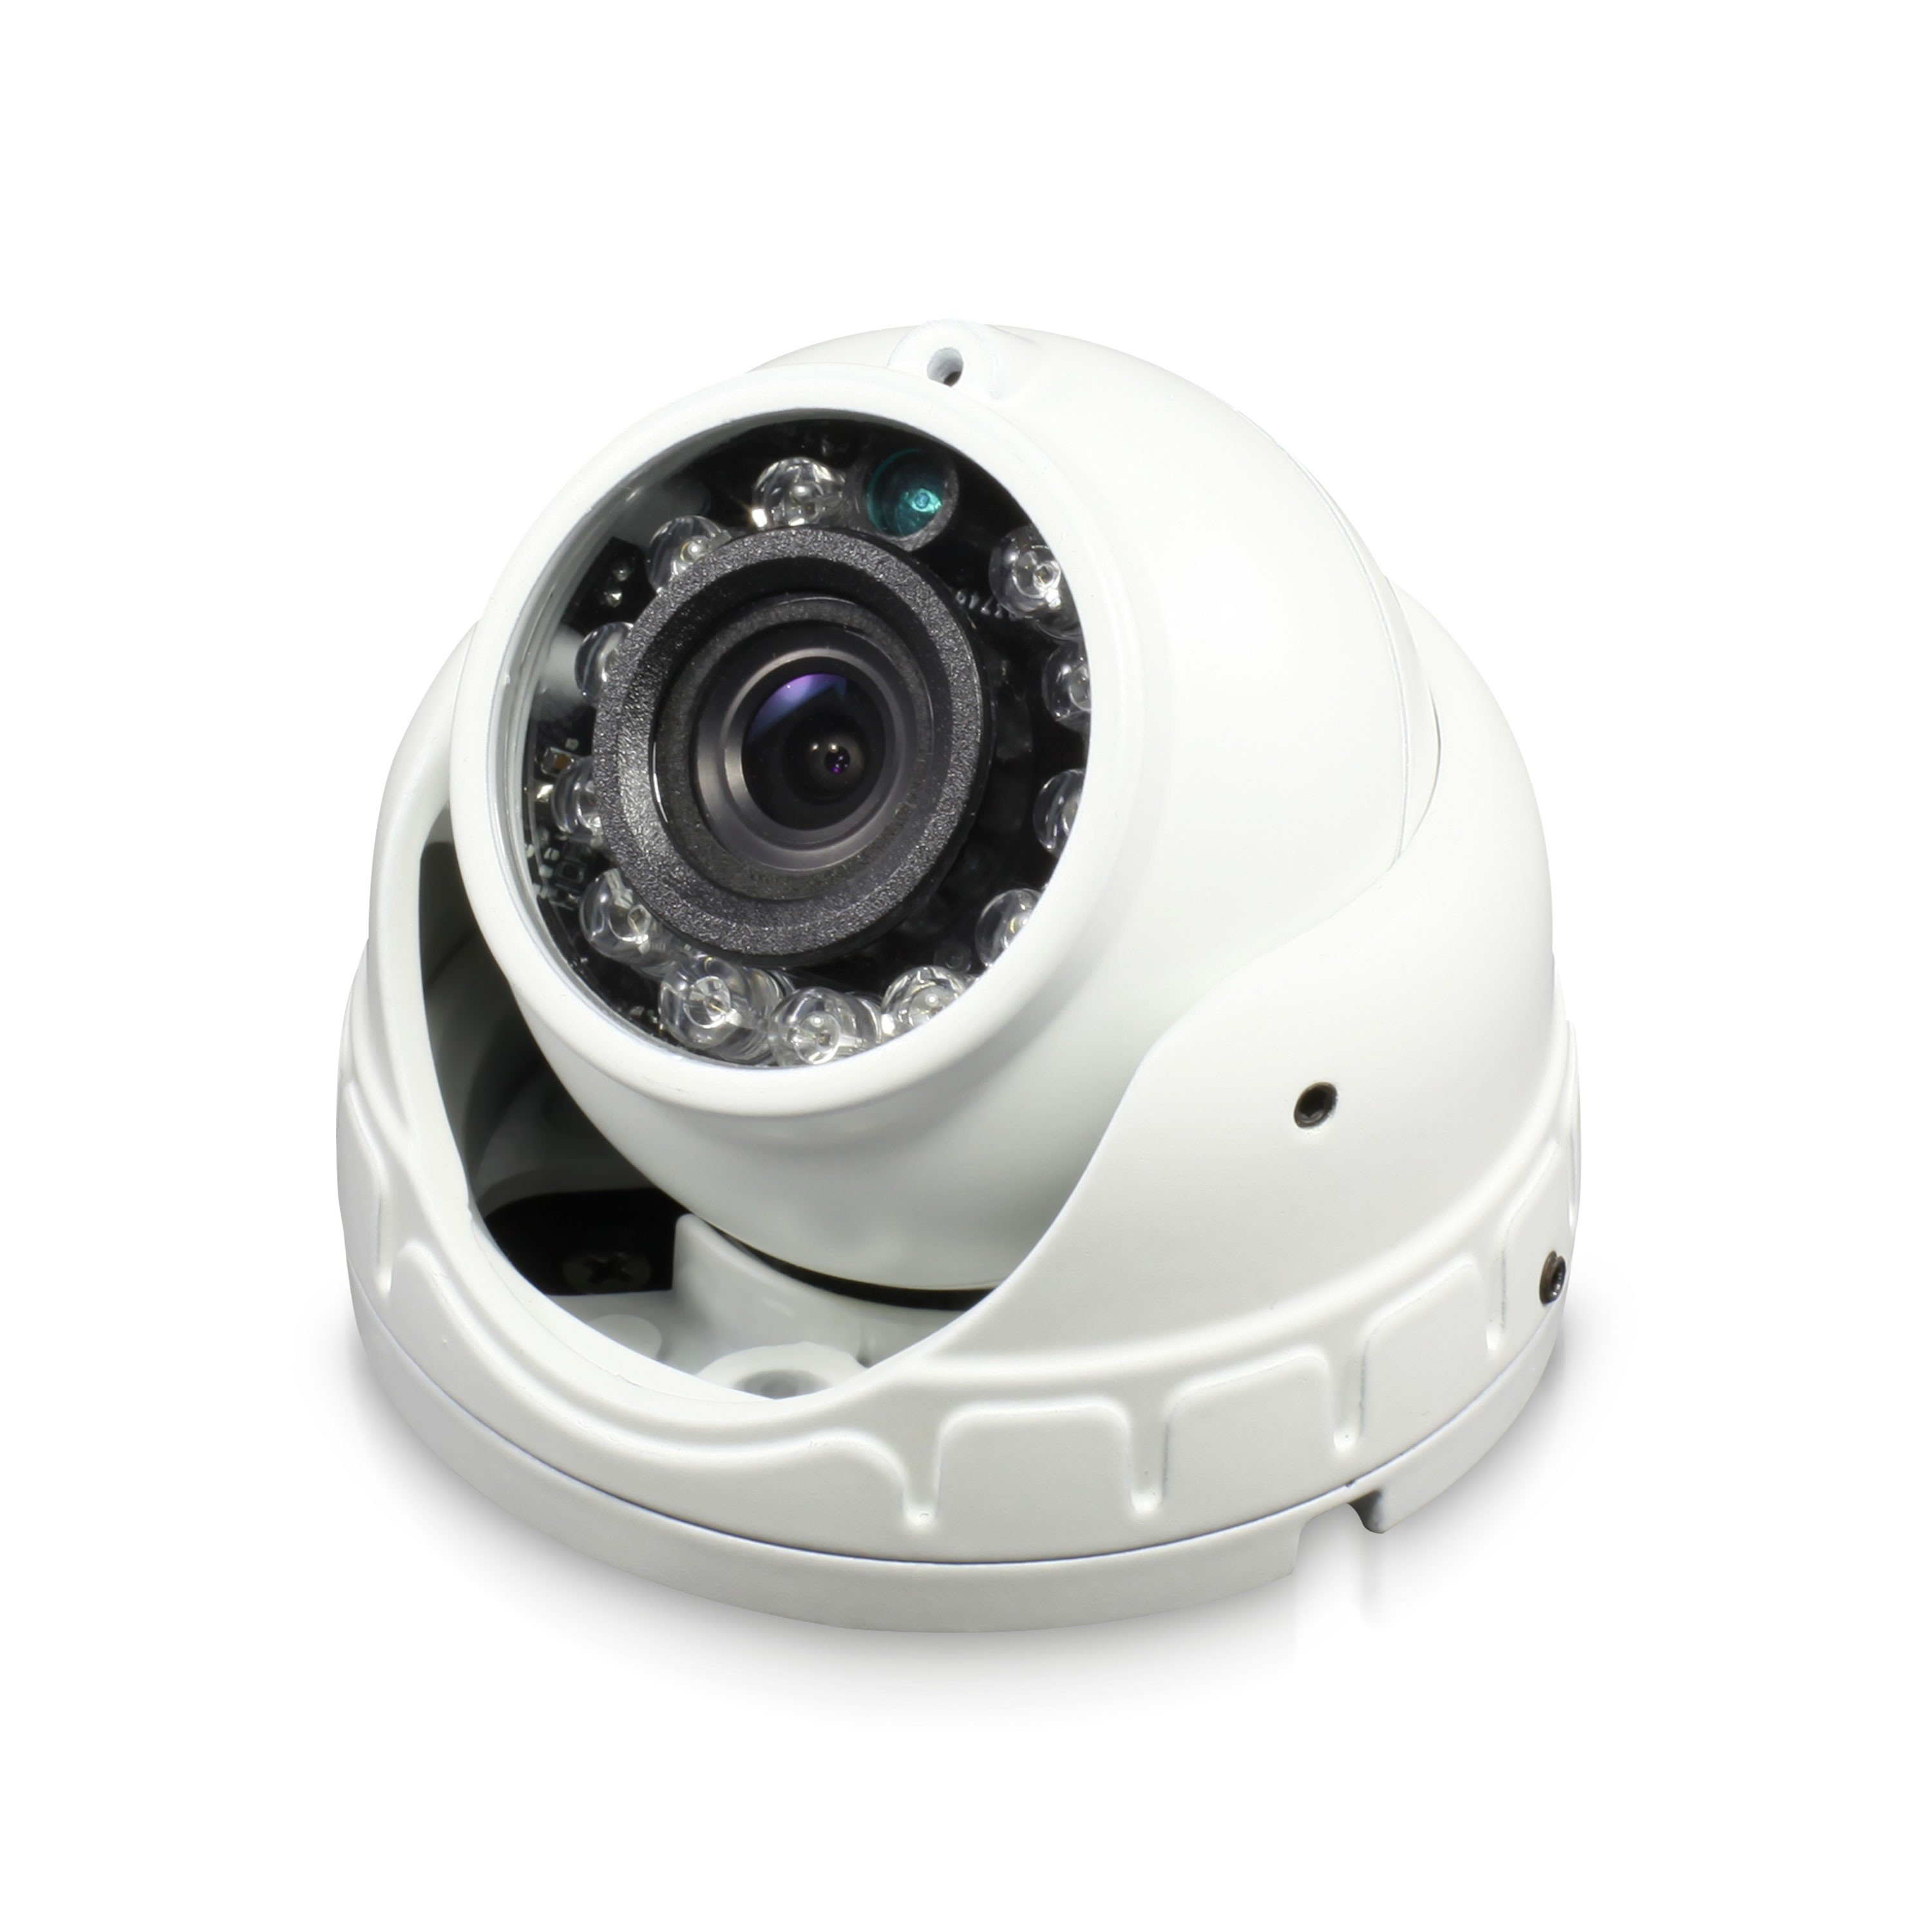 Swann Outdoor Security Camera: 1080p Full HD Mini Dome with Audio ...